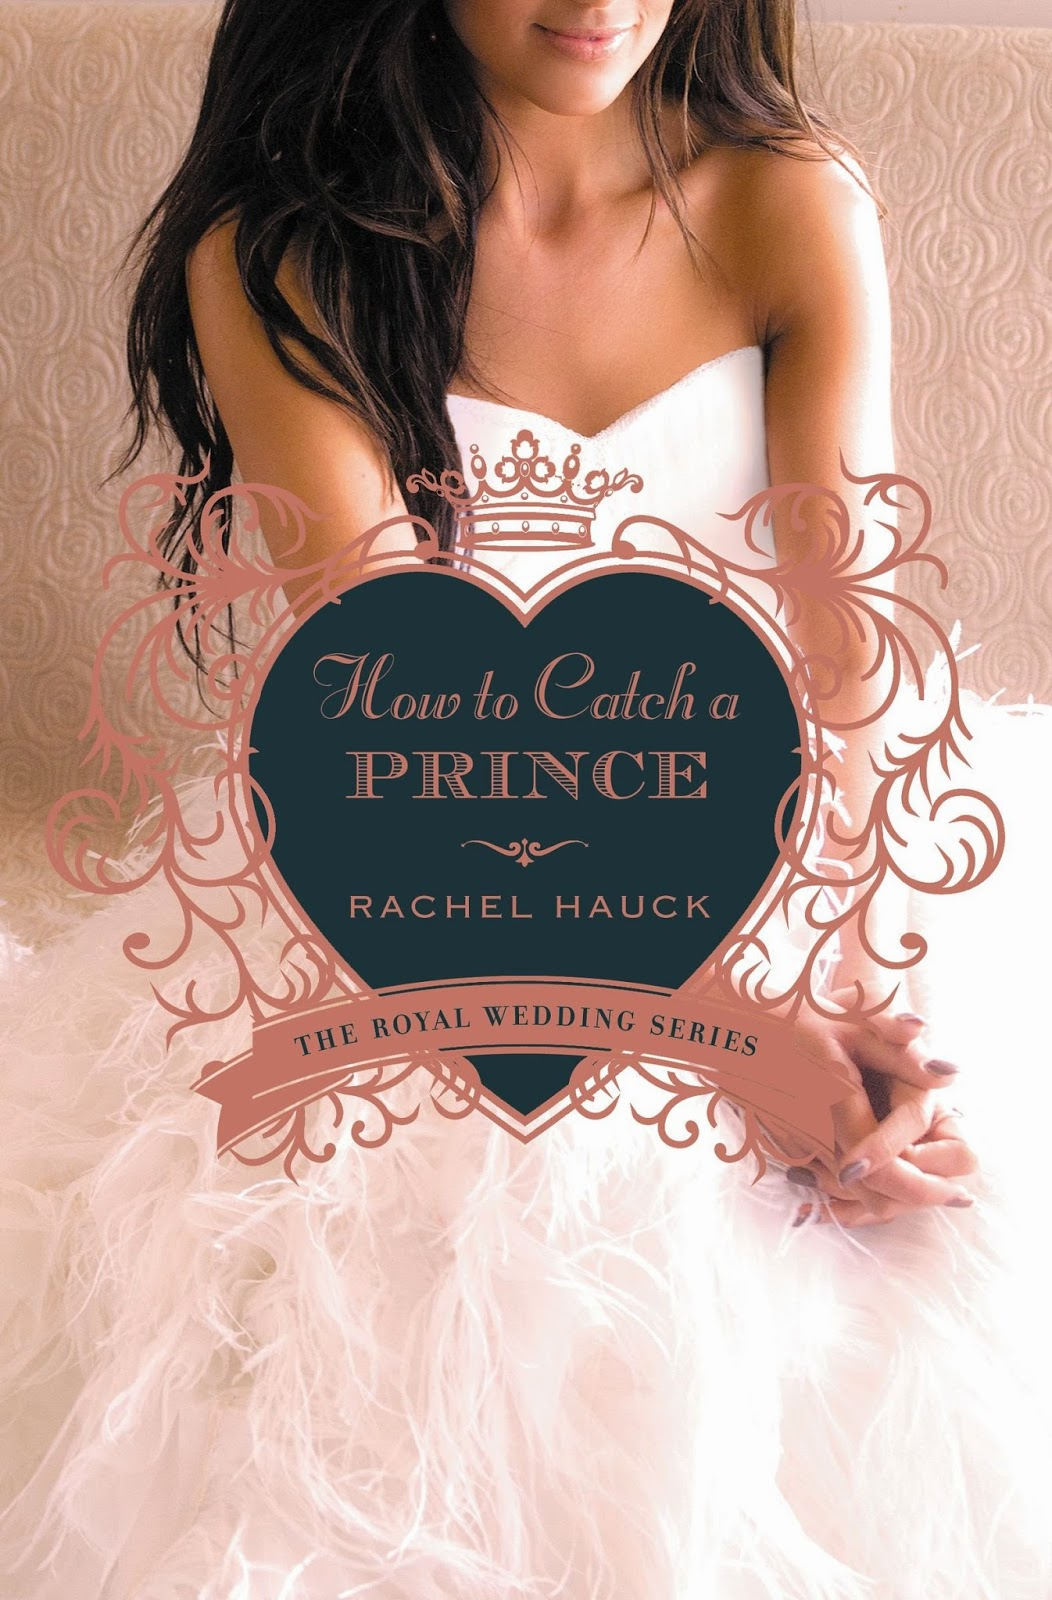 Purchase How to Catch a Prince on Amazon